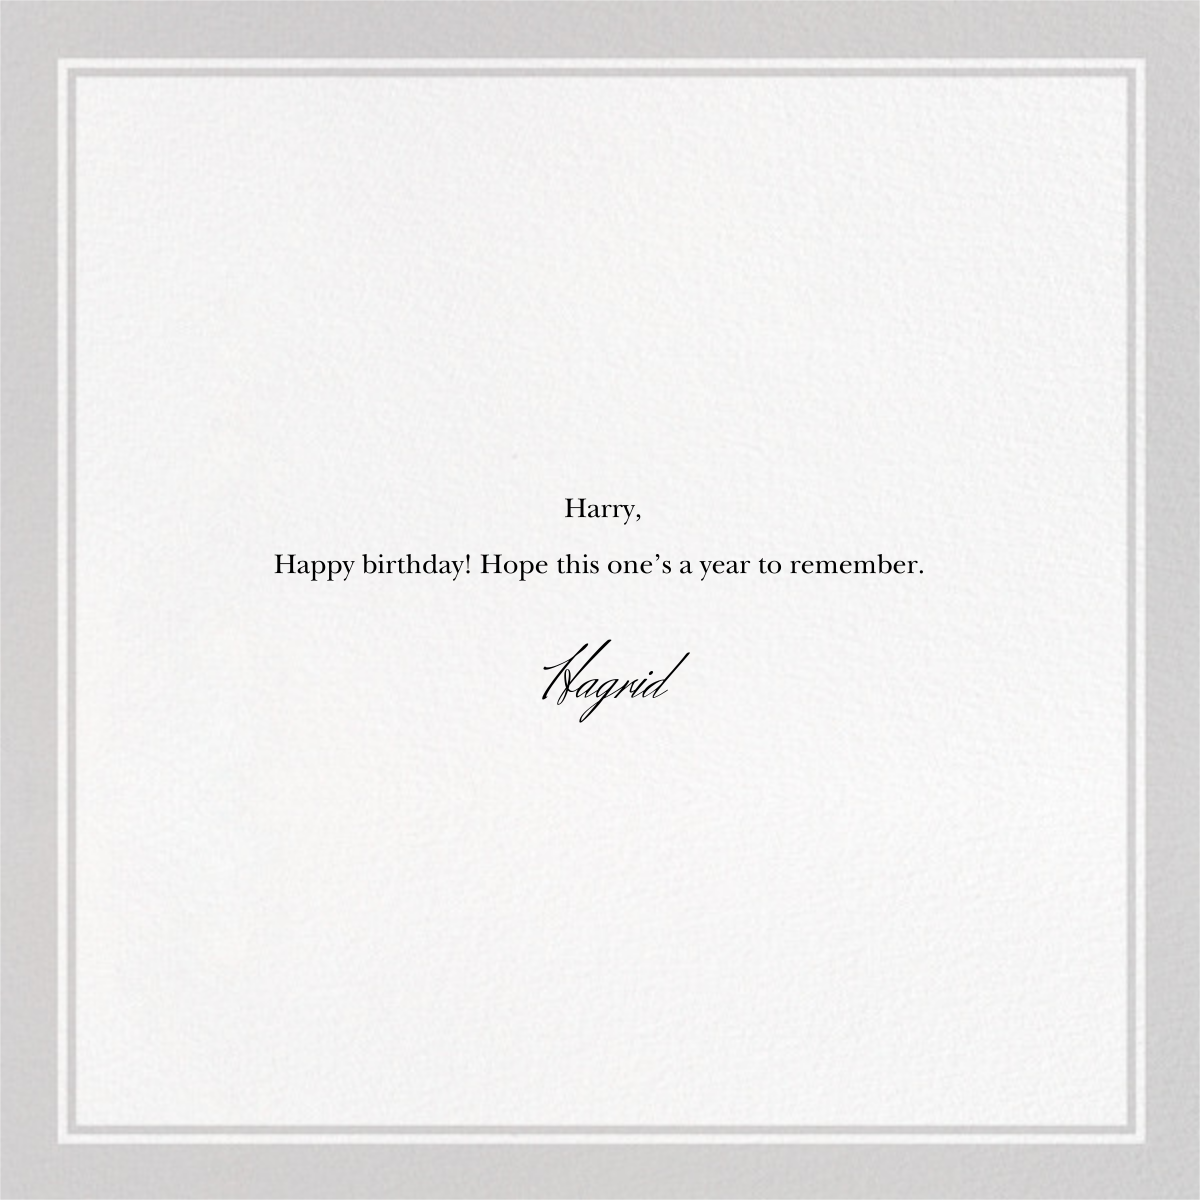 Not Old - The New Yorker - Funny birthday eCards - card back